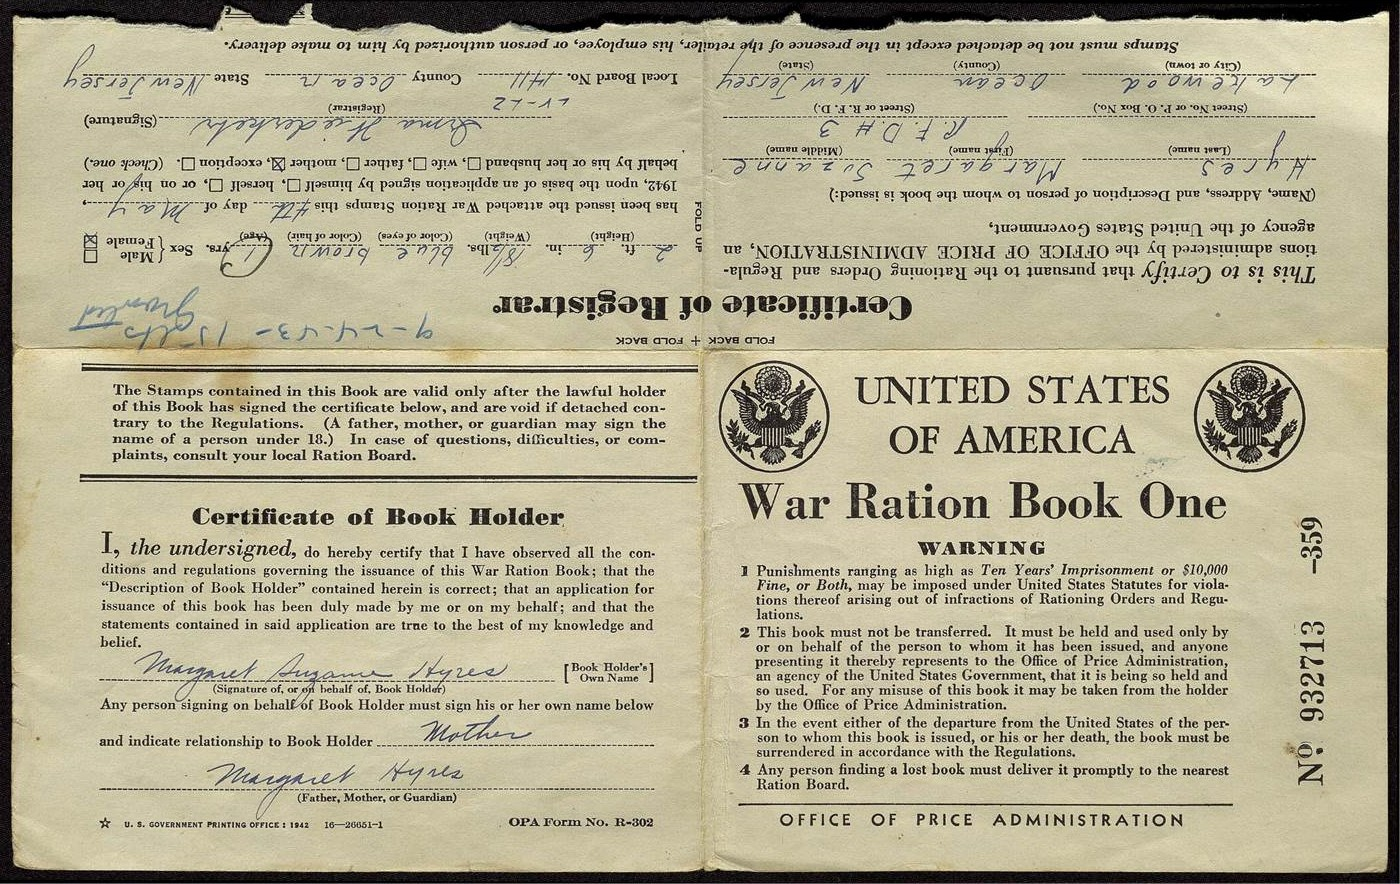 Image of World War 2 ration book from 1943